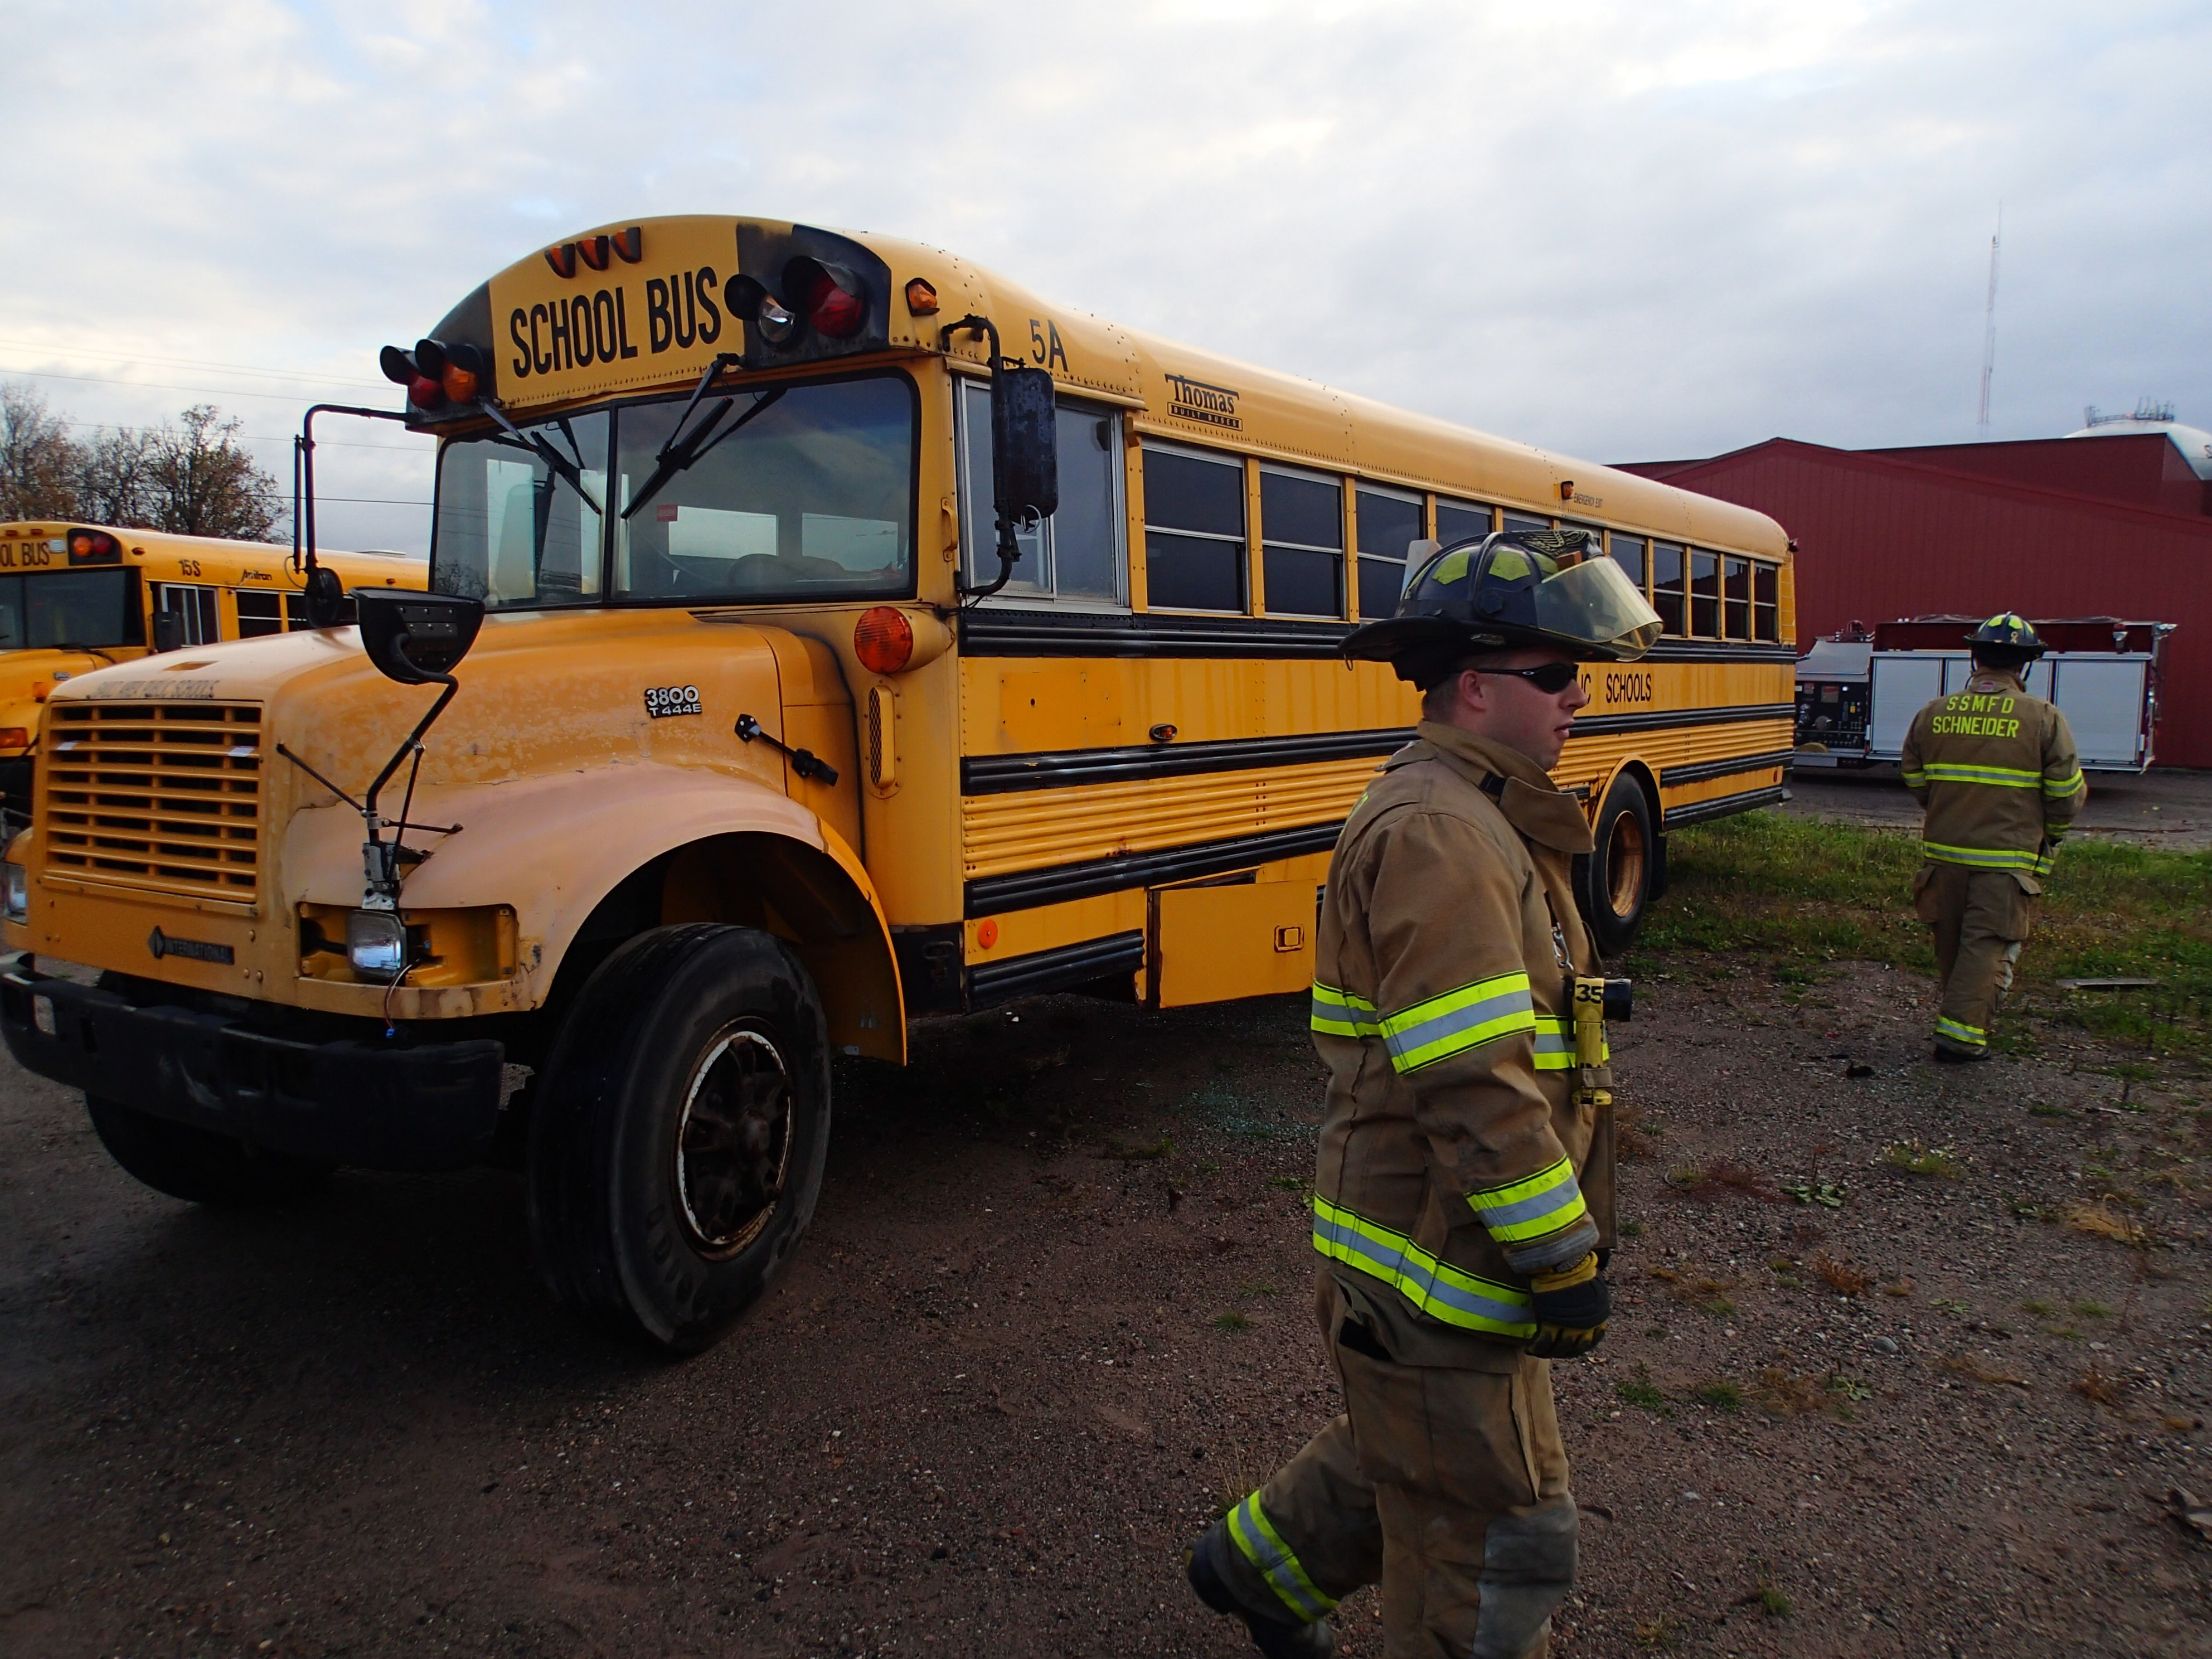 10-16-2013 - Bus Extrication Training 001